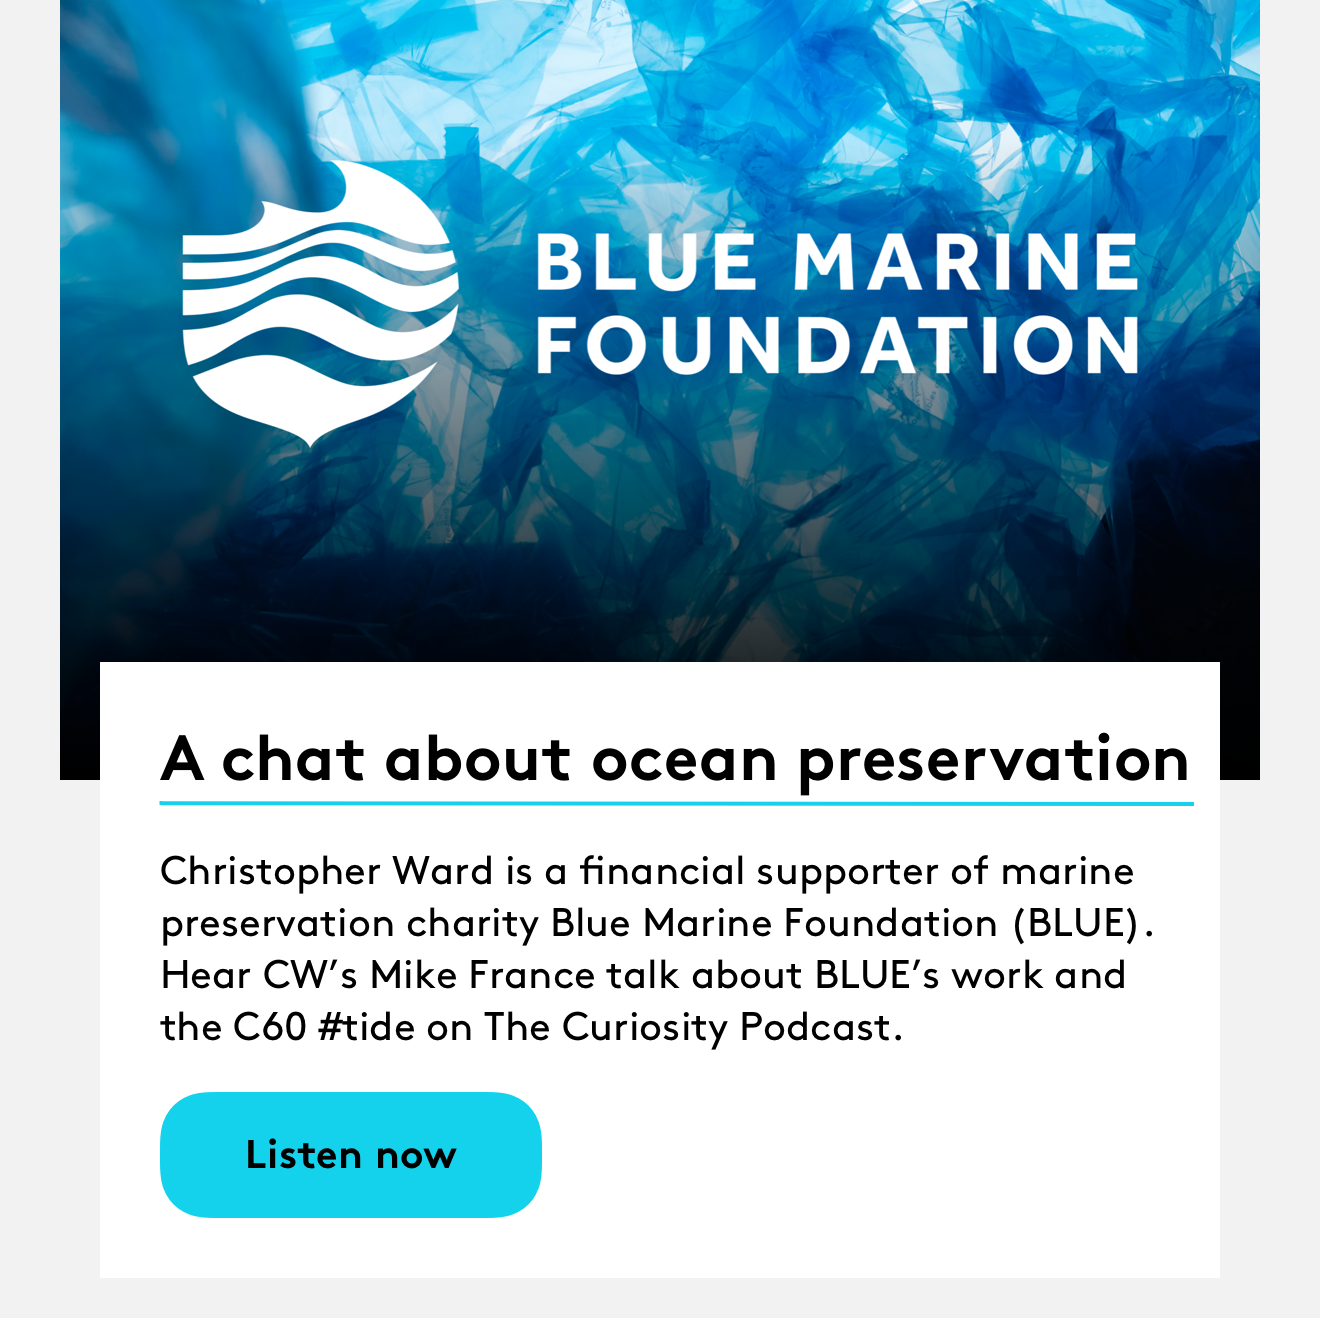 A chat about ocean preservation